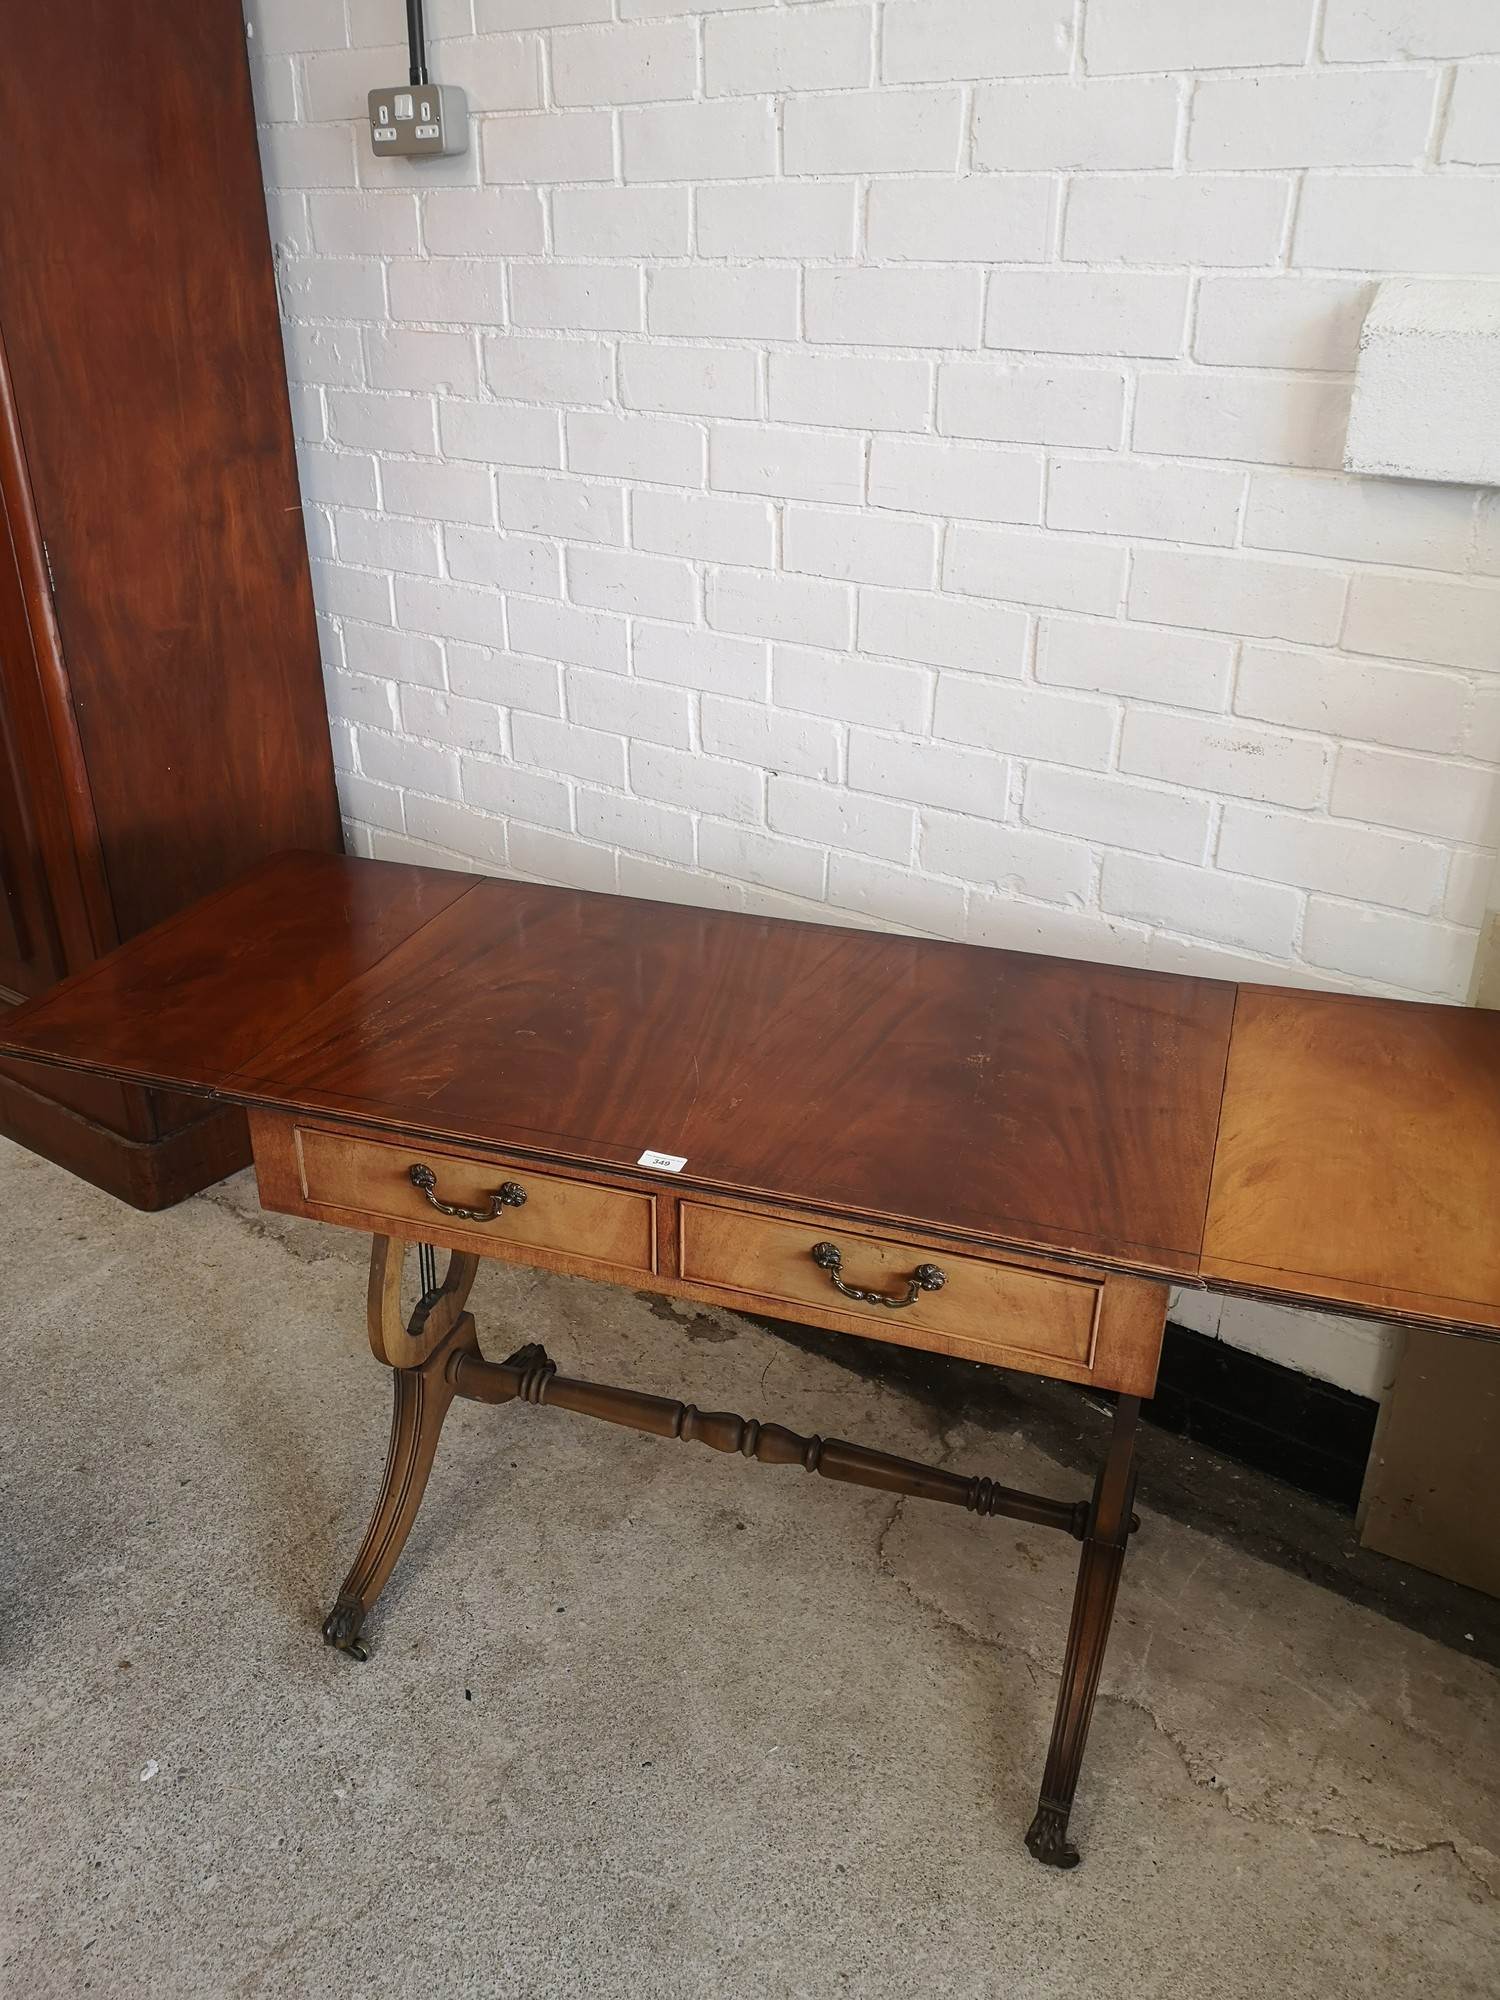 Reproduction drop leaf liar end table with 2 drawers. 5ft extended out with leafs in length. - Image 7 of 7